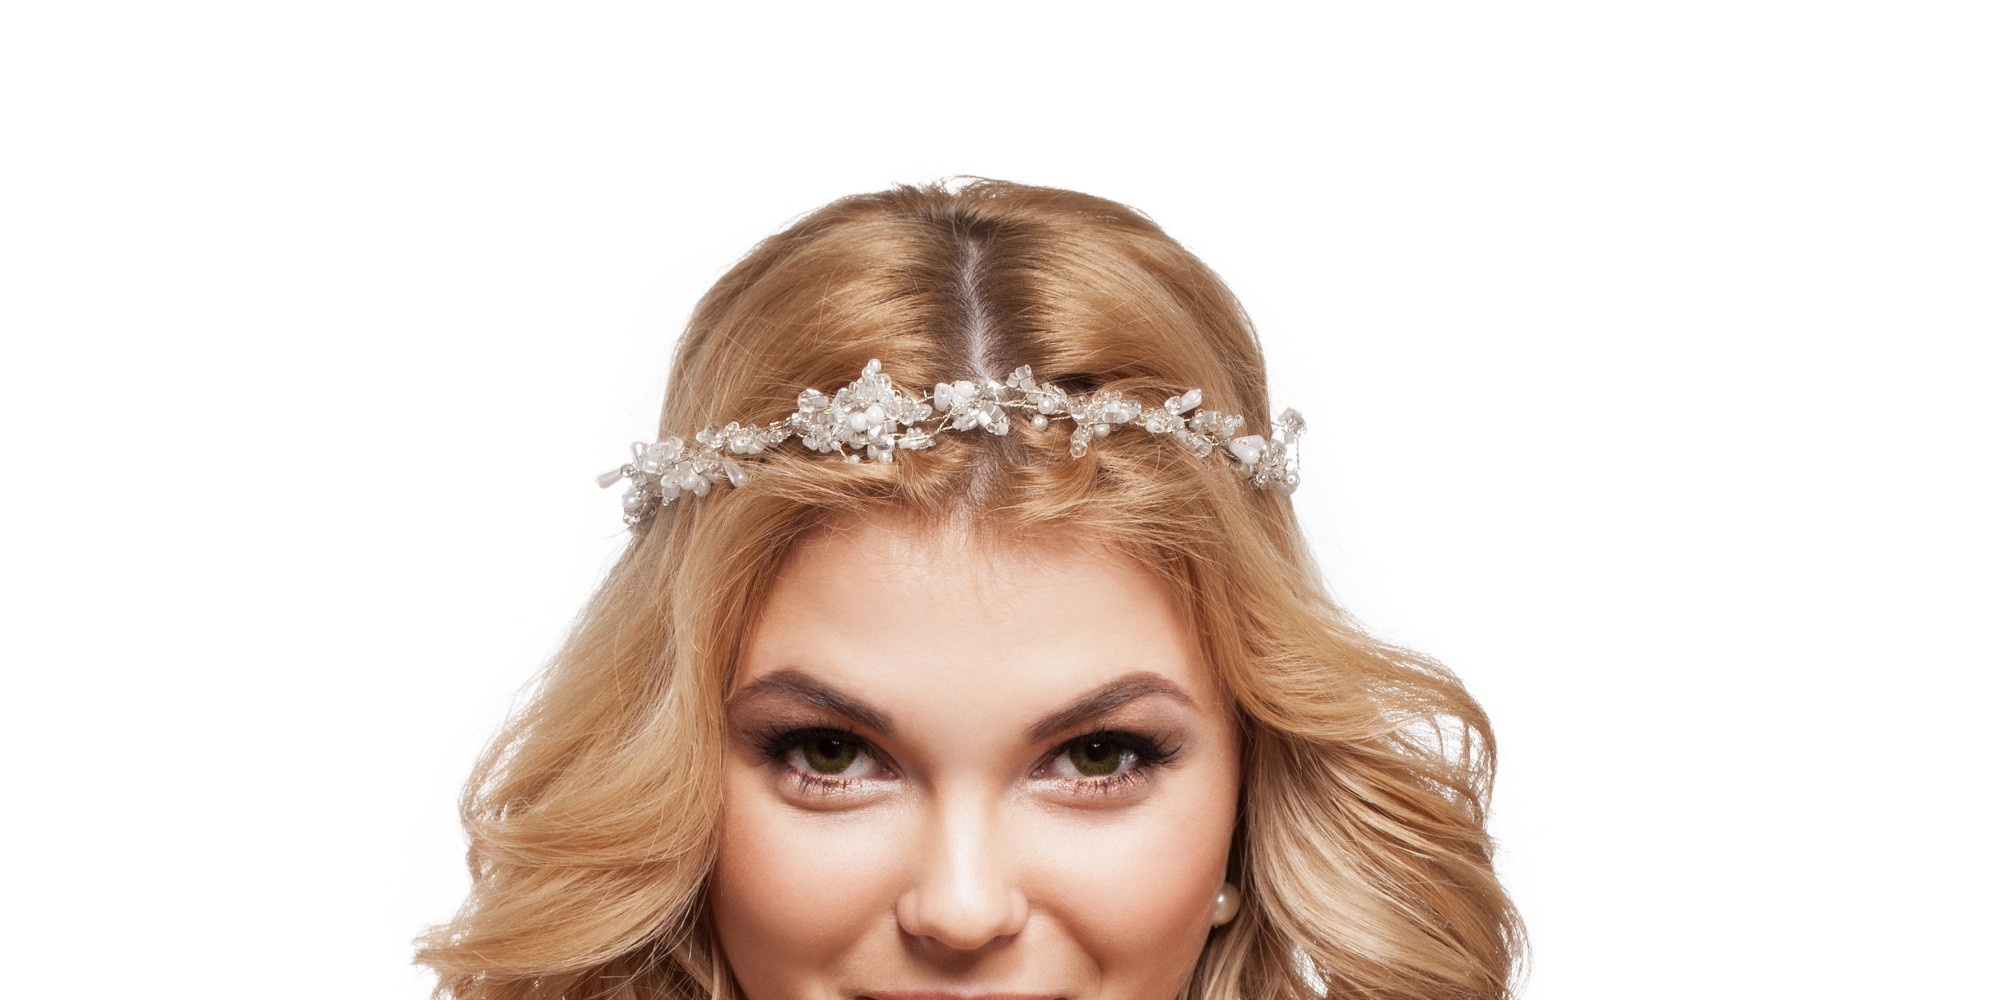 wedding hairstyles choosing the right hairstyle for you huffpost